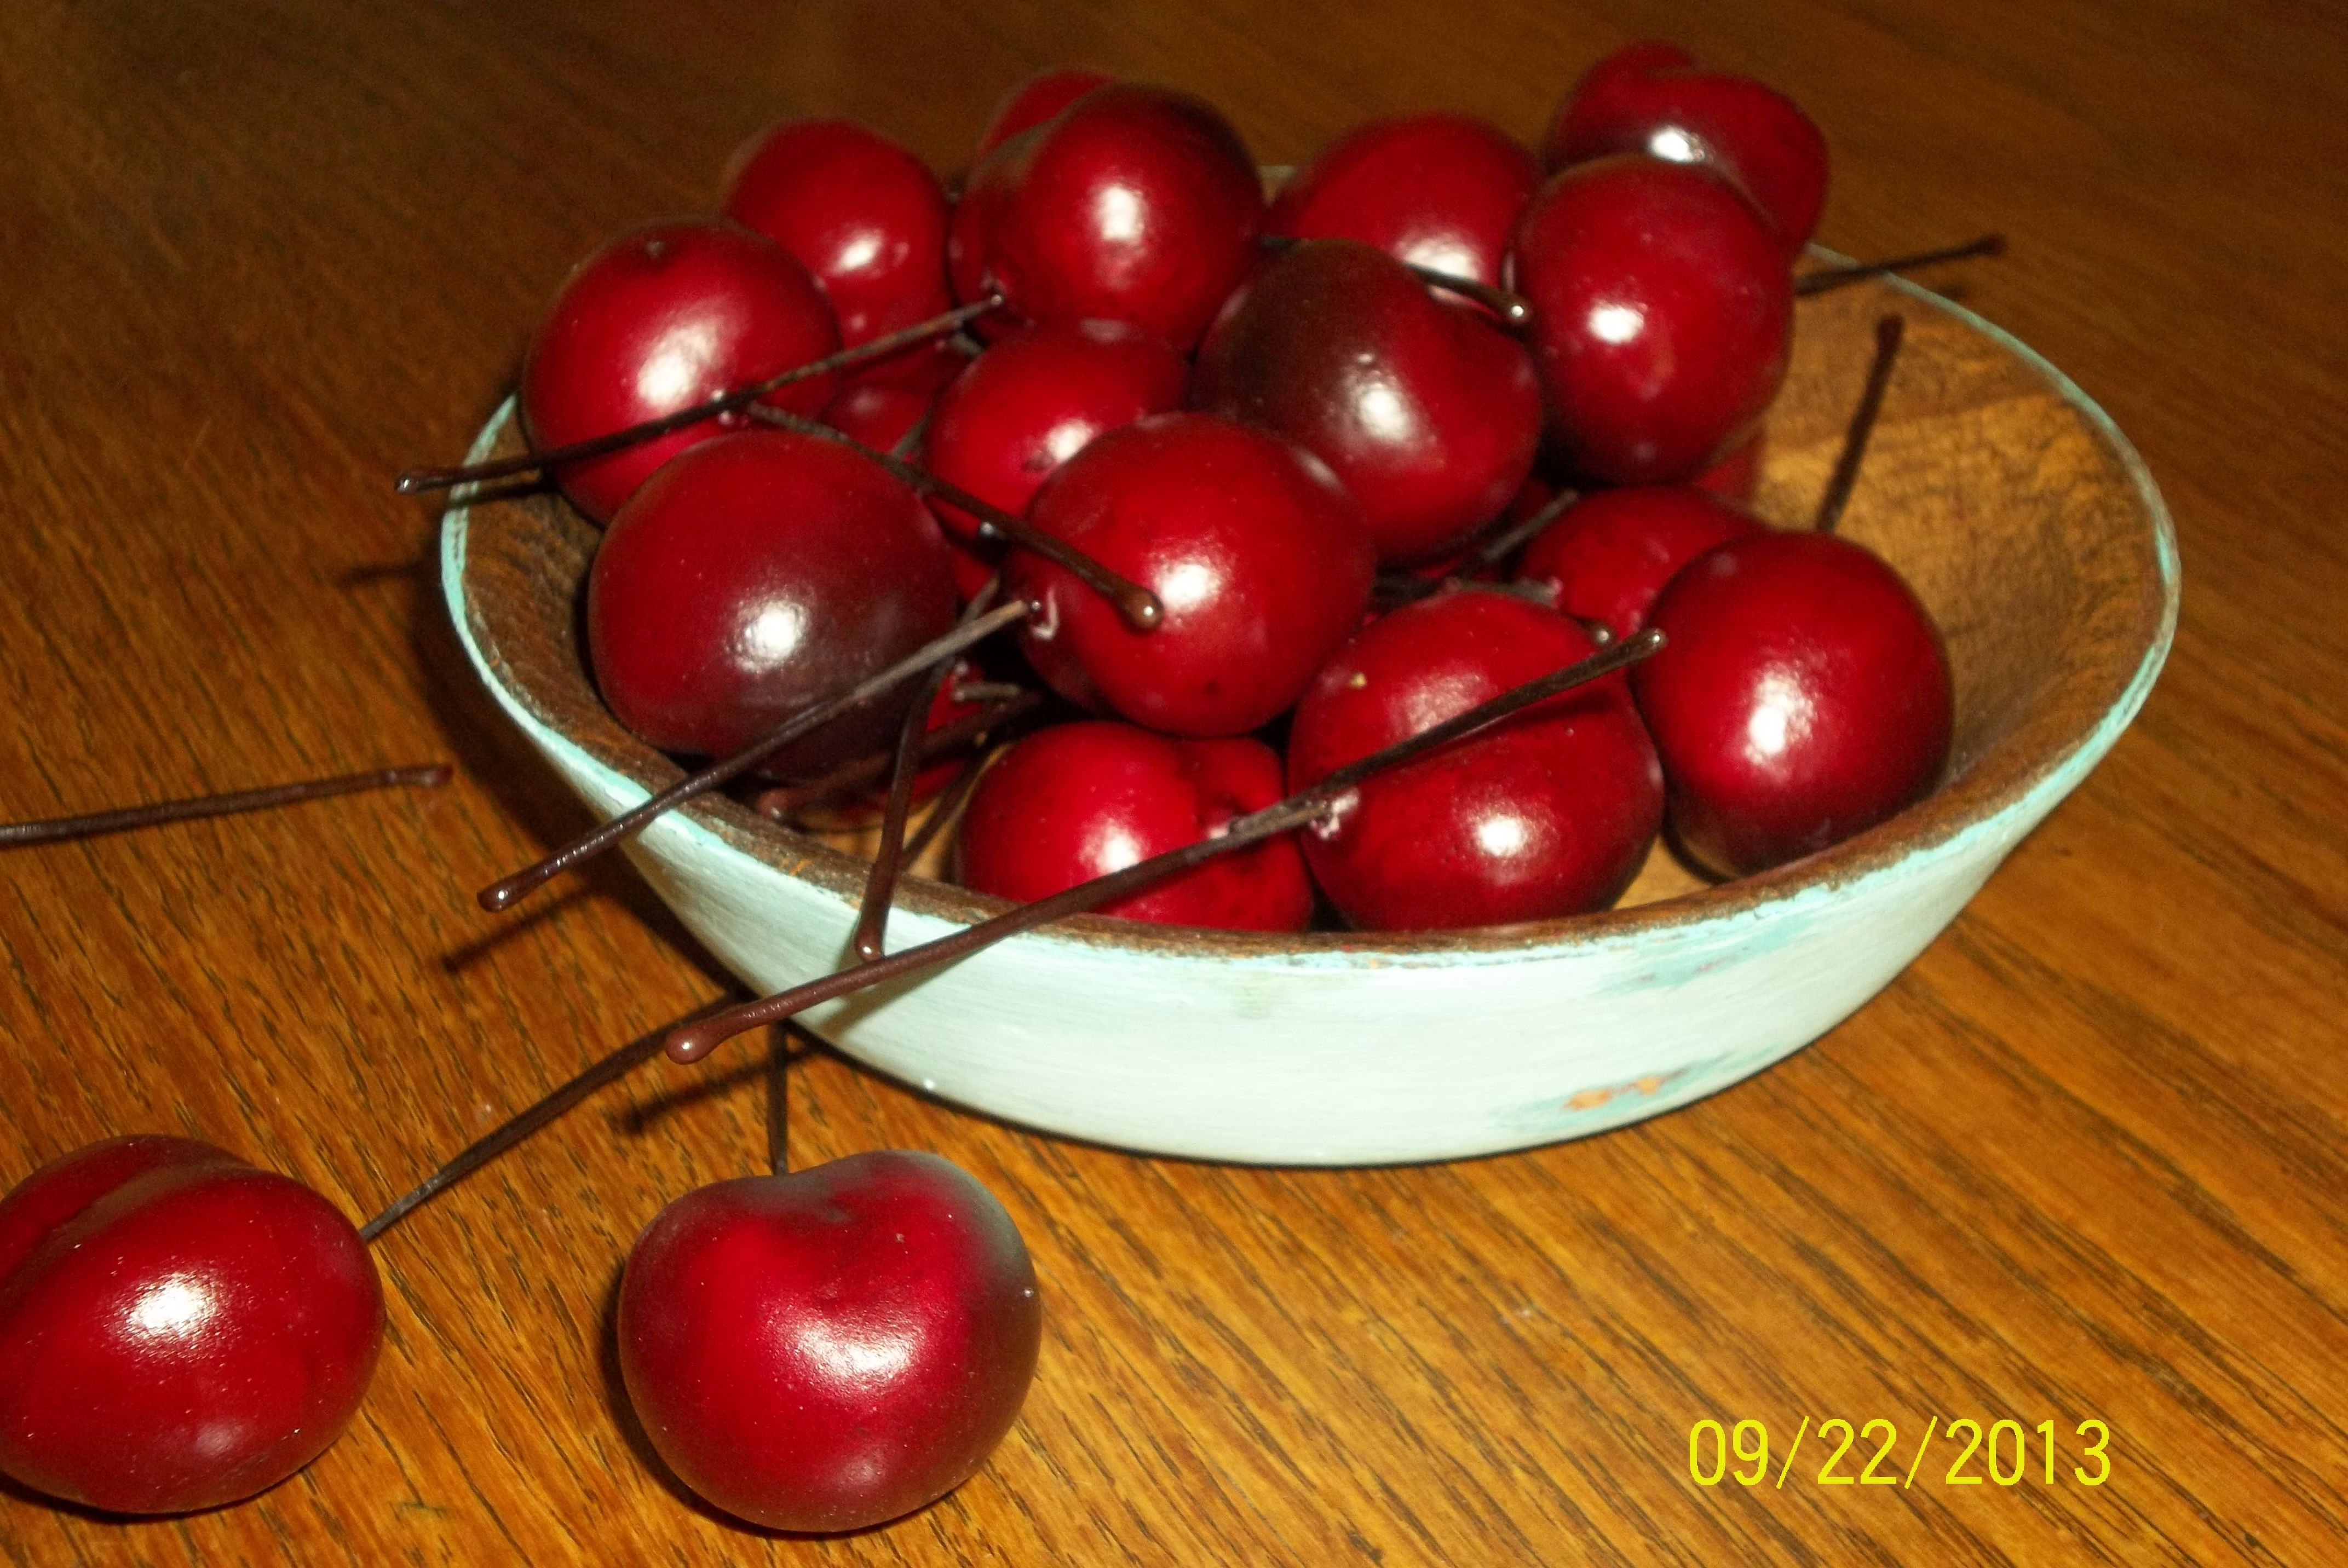 Cherries in a painted wooden bowl